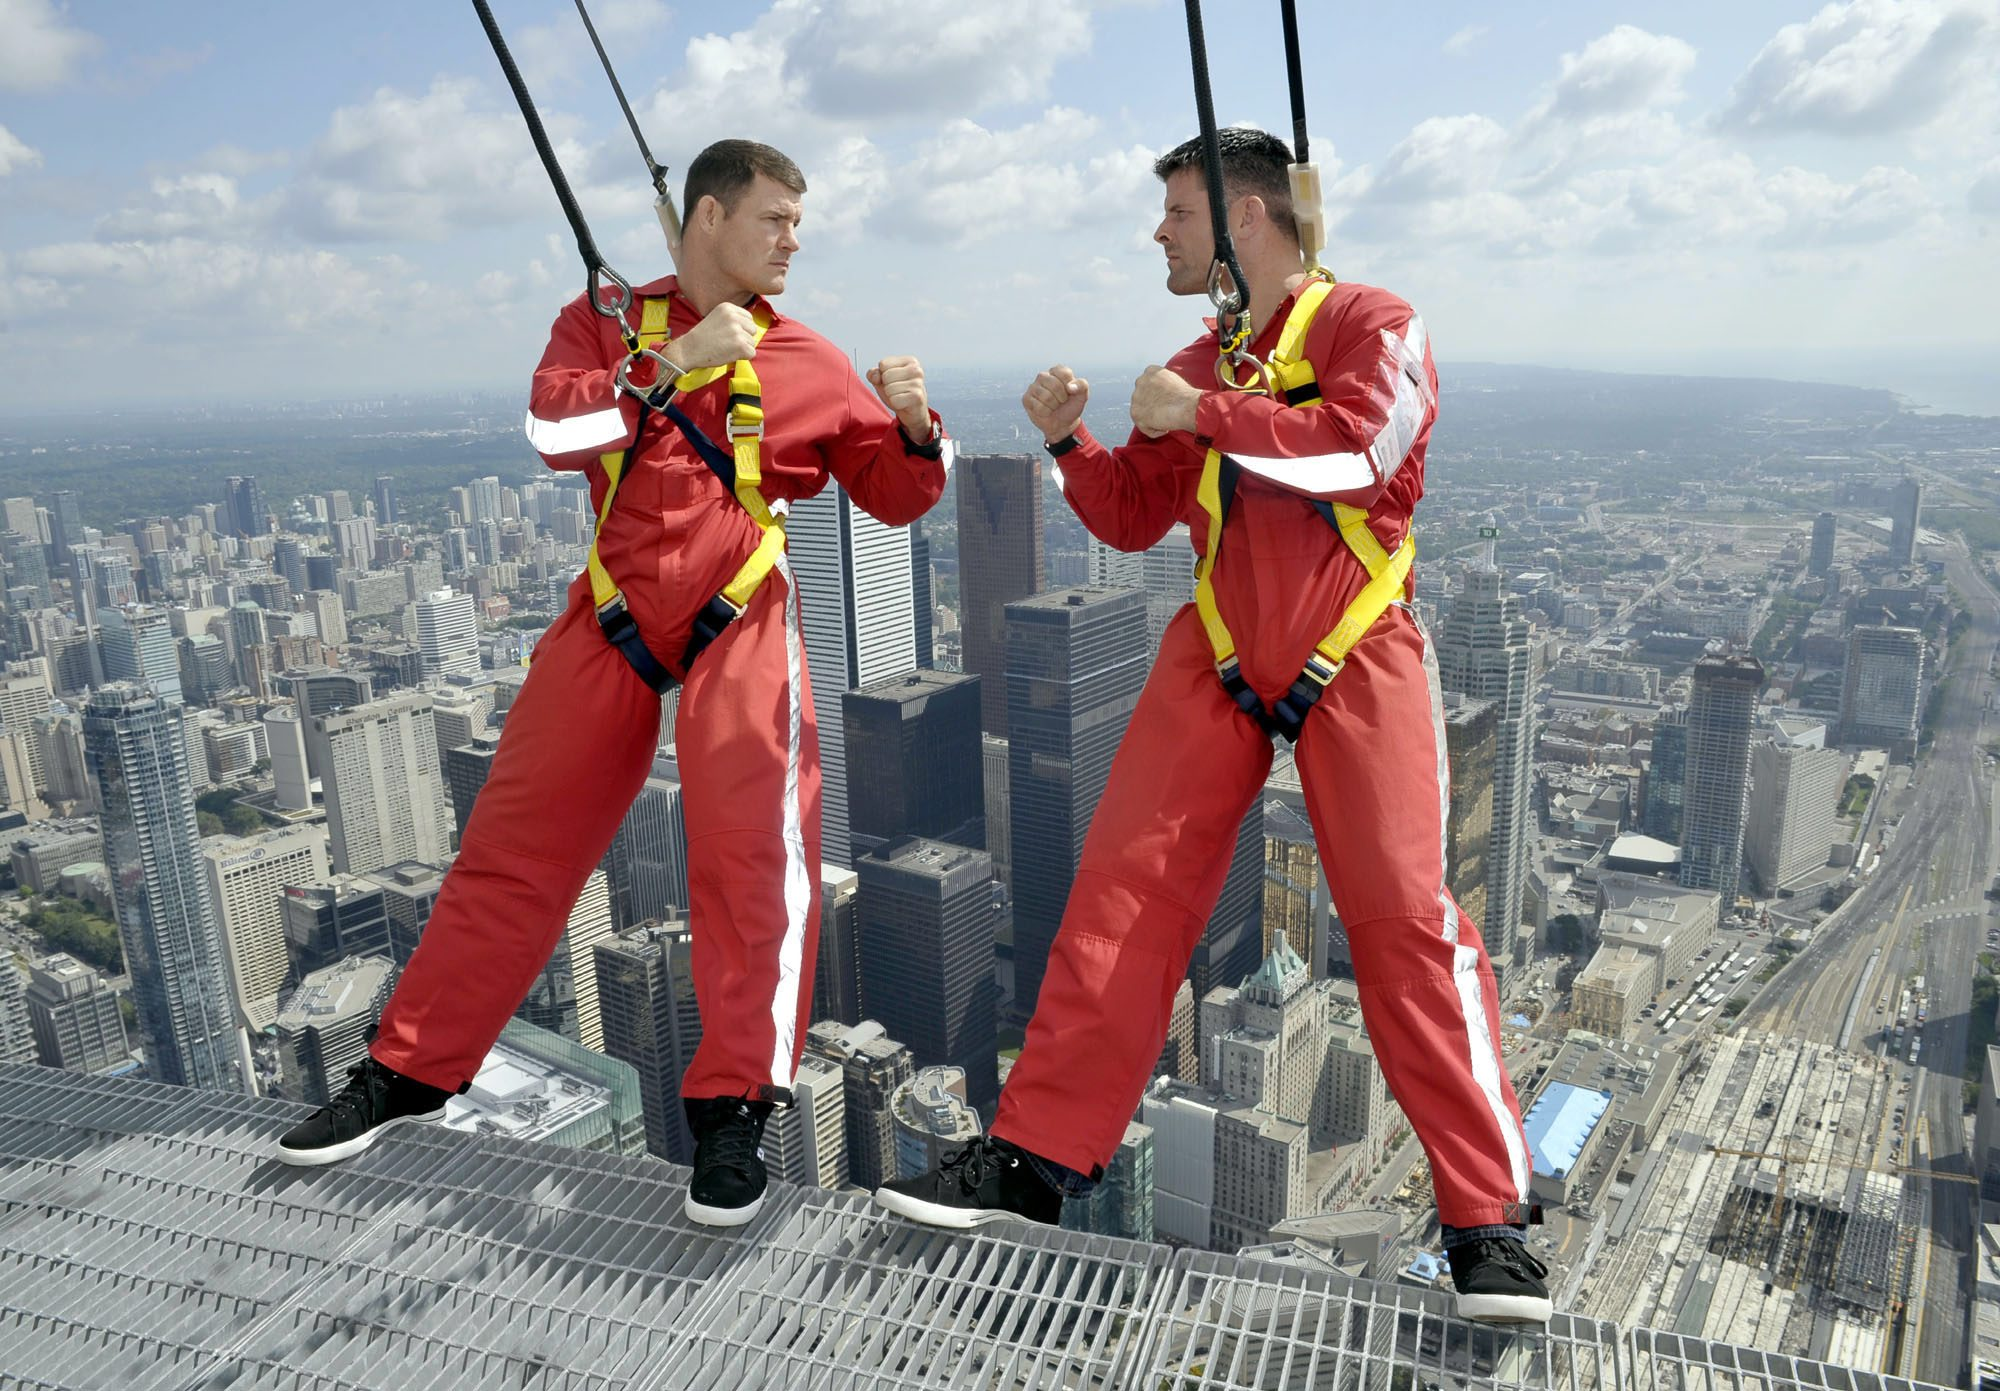 Michael Bisping and Brian Stann hang off the CN Tower's EdgeWalk in Toronto to promote their fight. (AP)